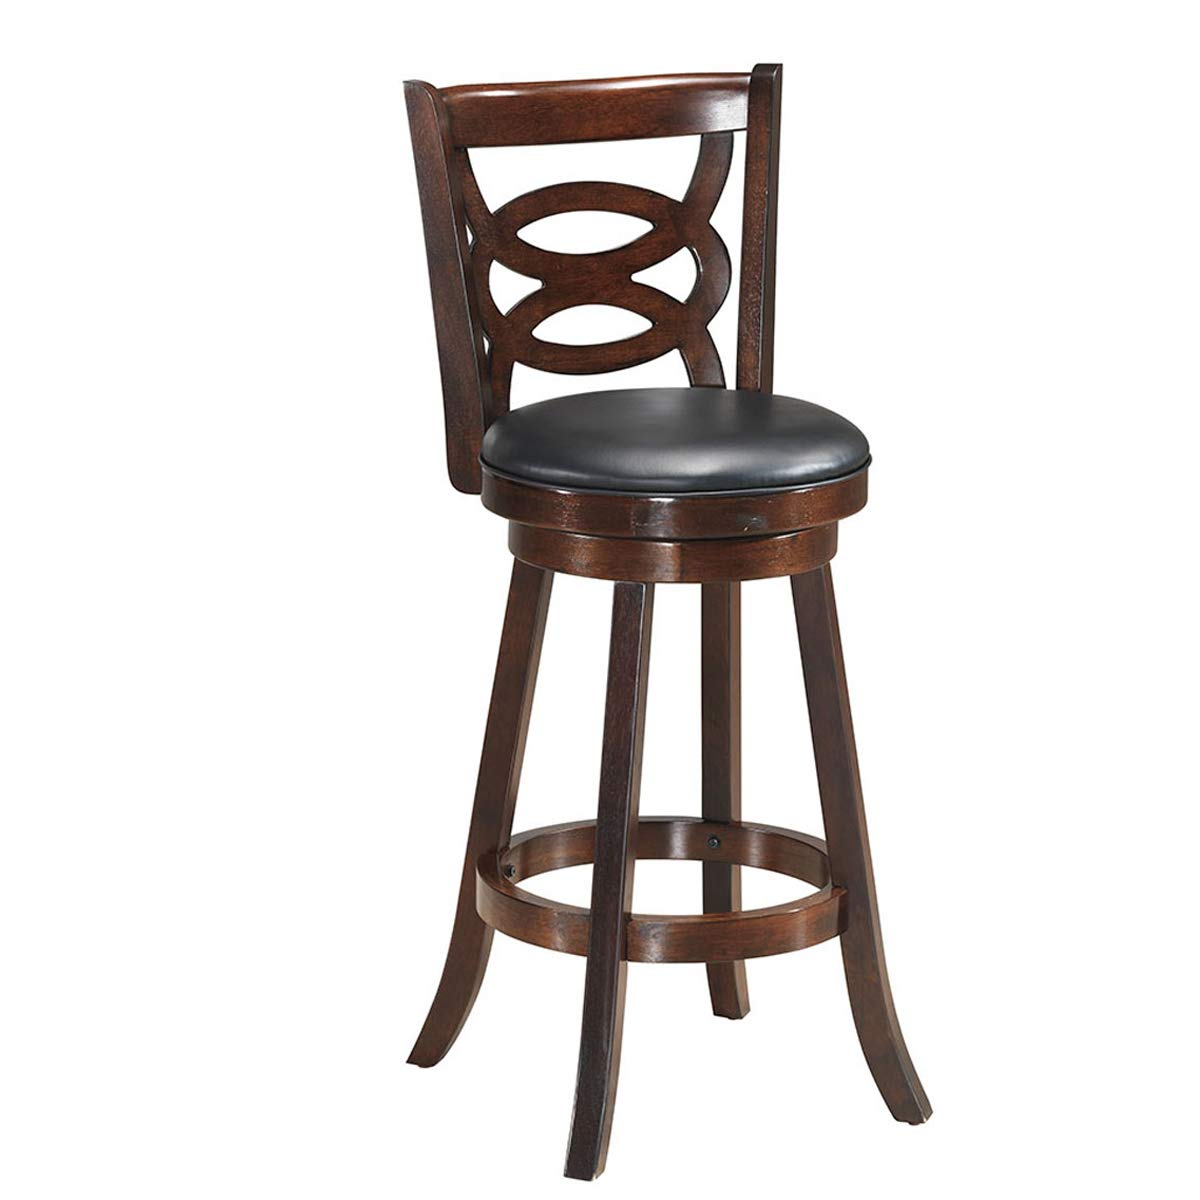 COSTWAY Dining Chair, Accent Wooden Back Swivel Bar Counter Height Stool, Fabric Upholstered 360 Degree Swivel, PVC Cushioned Seat, Perfect for Dining and Living Room (Height 29'') by COSTWAY